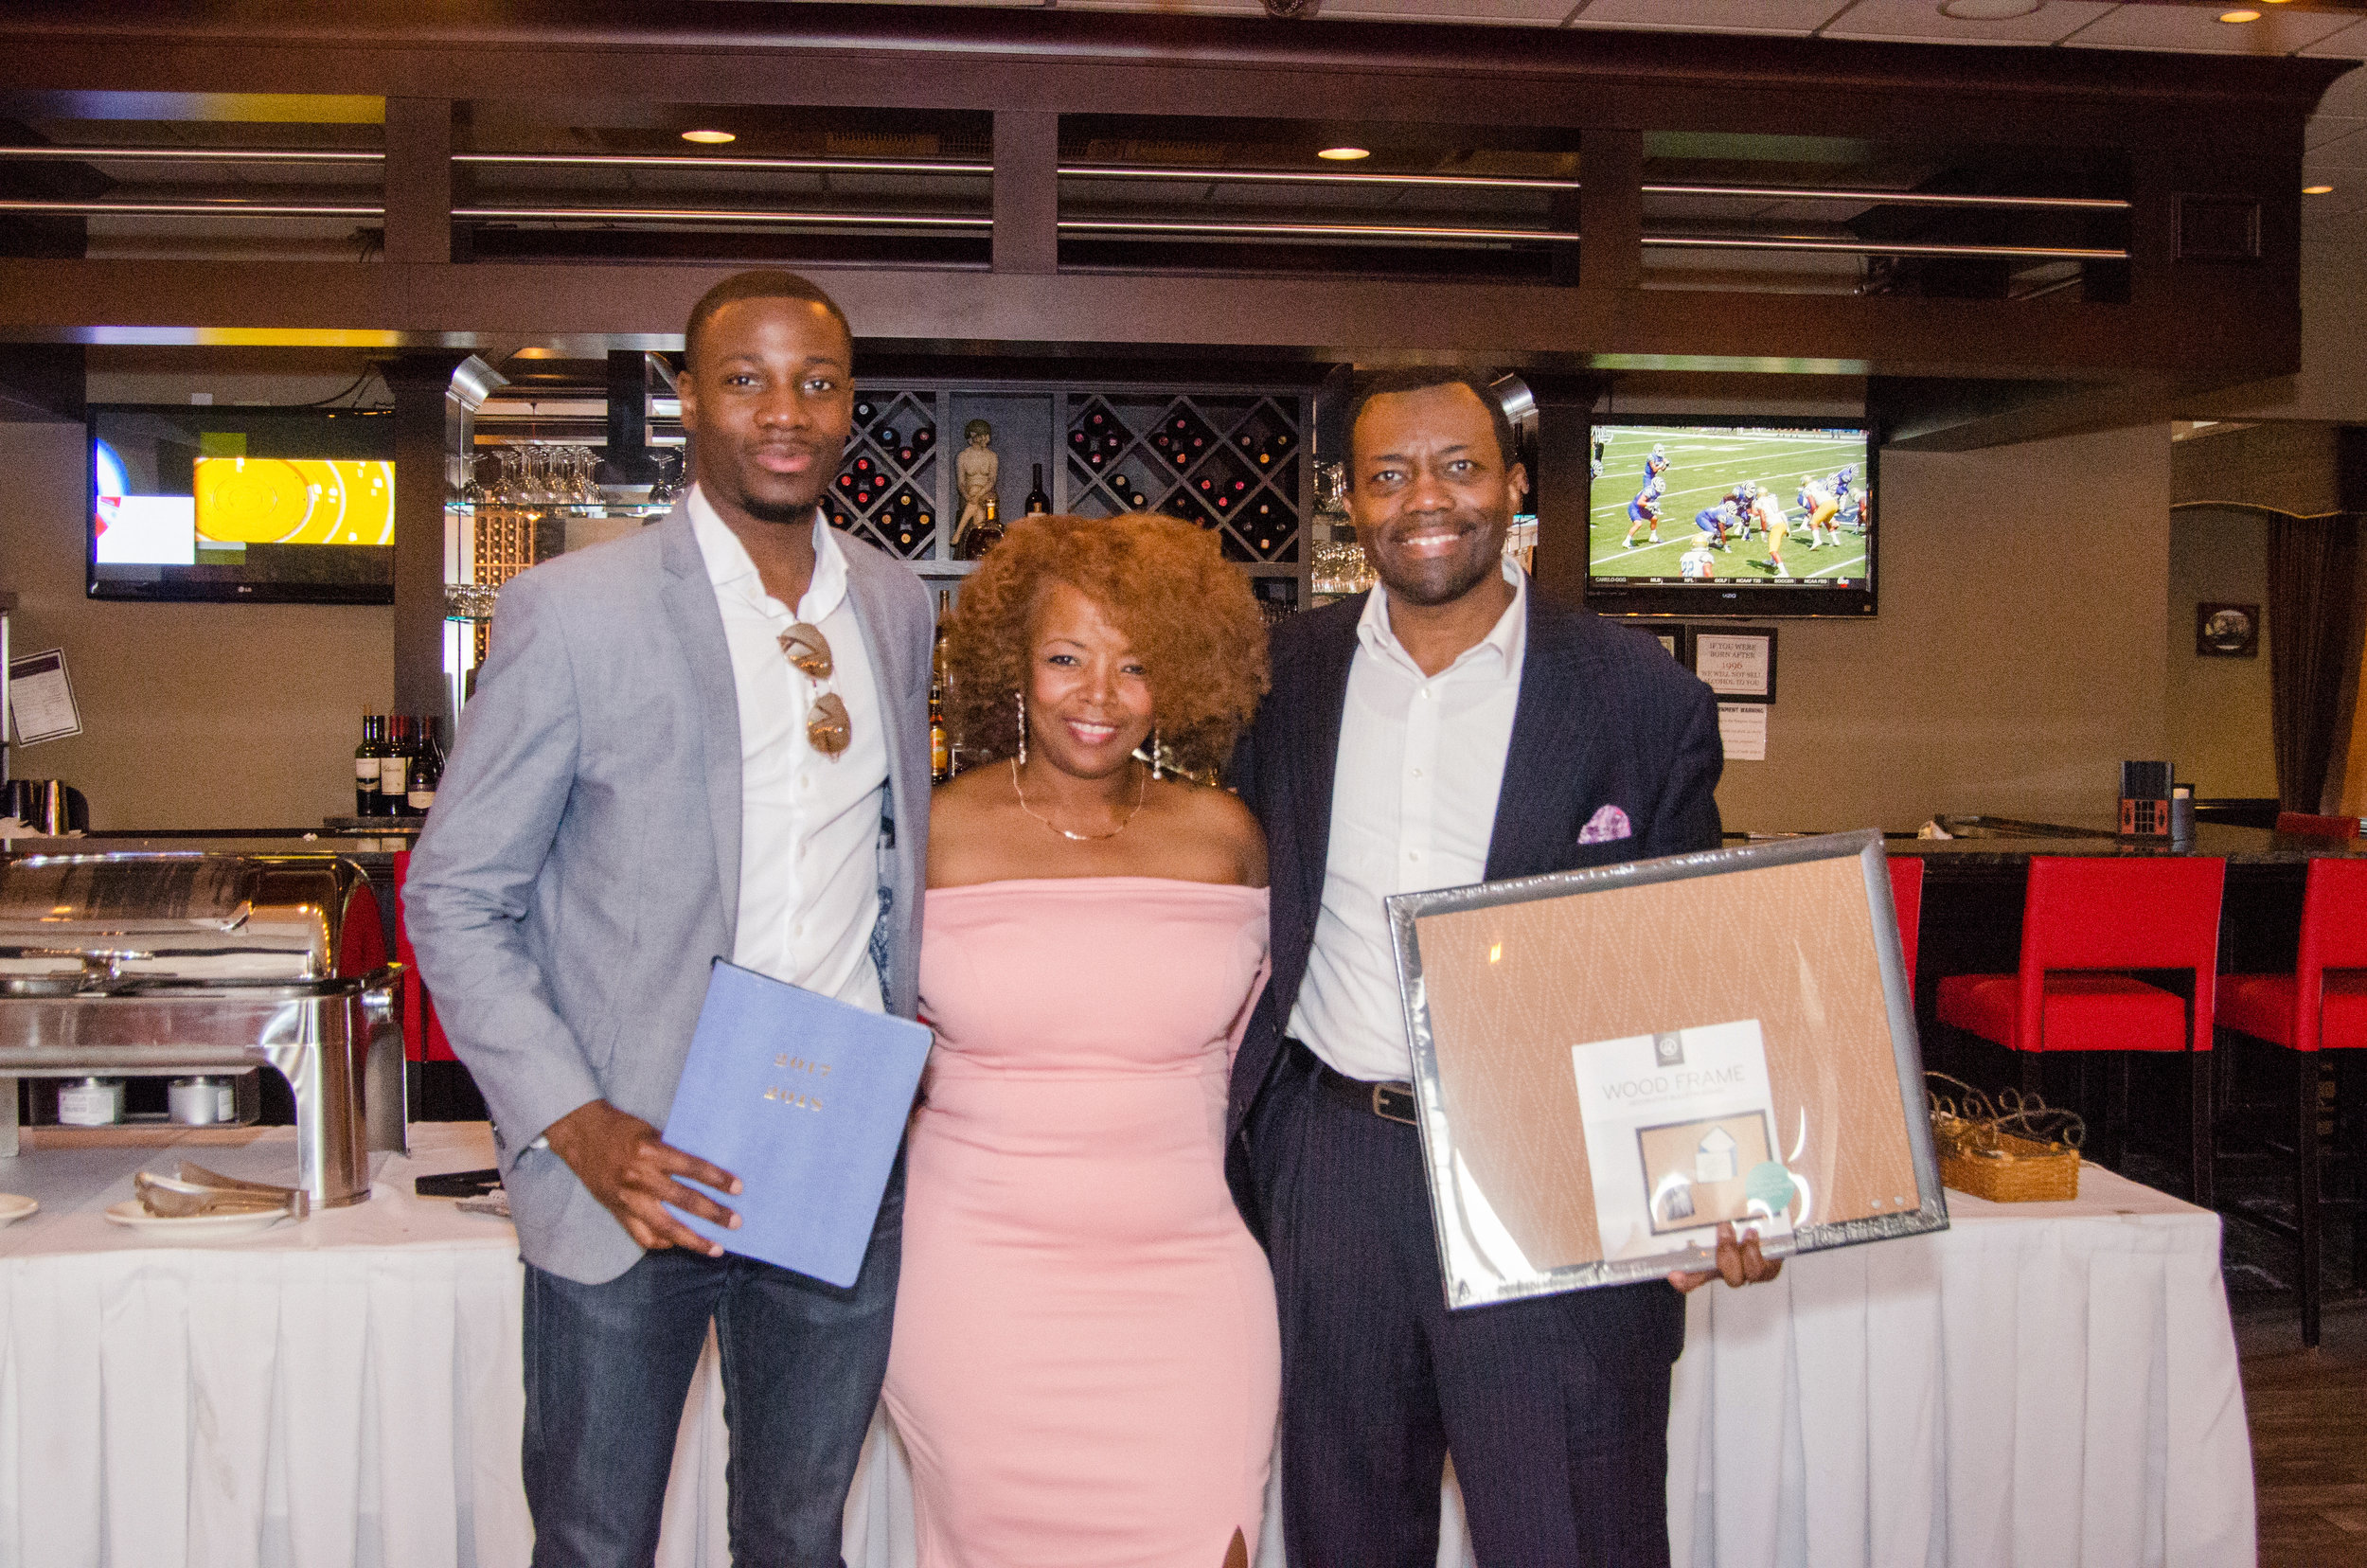 During the drawing Rotimi (planner) and Derrick (vision board) won.